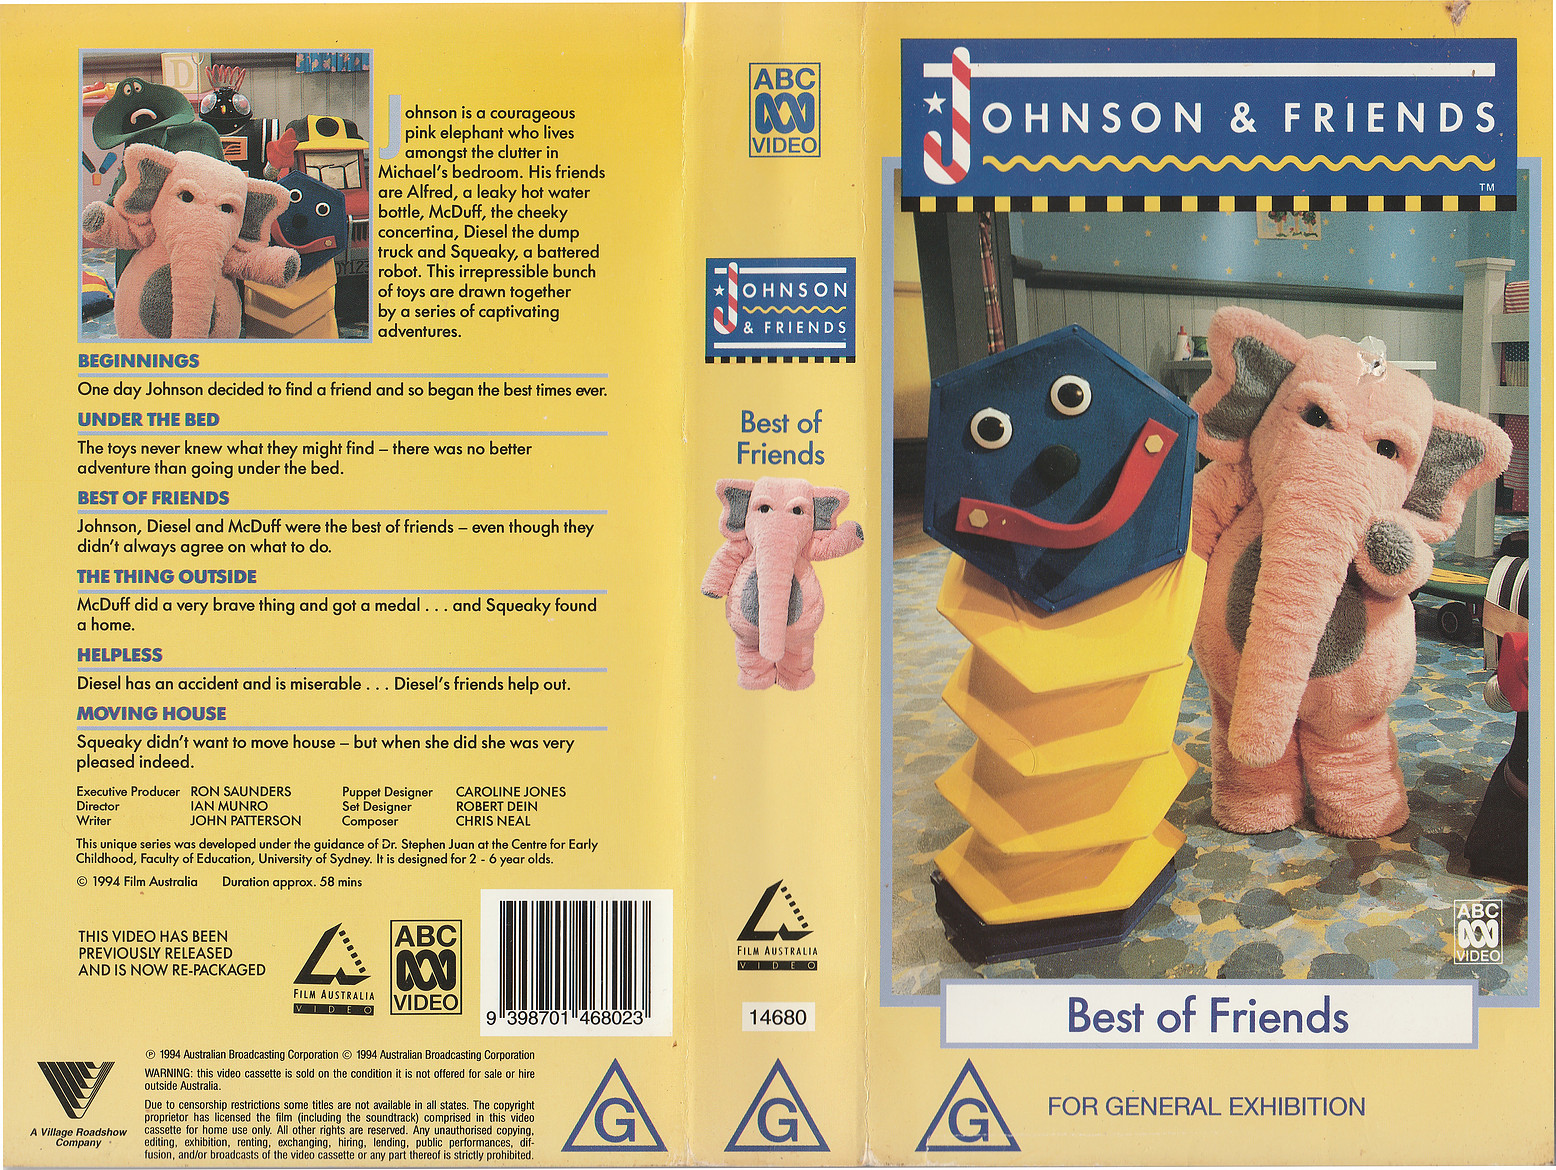 Johnson and Friends Videography